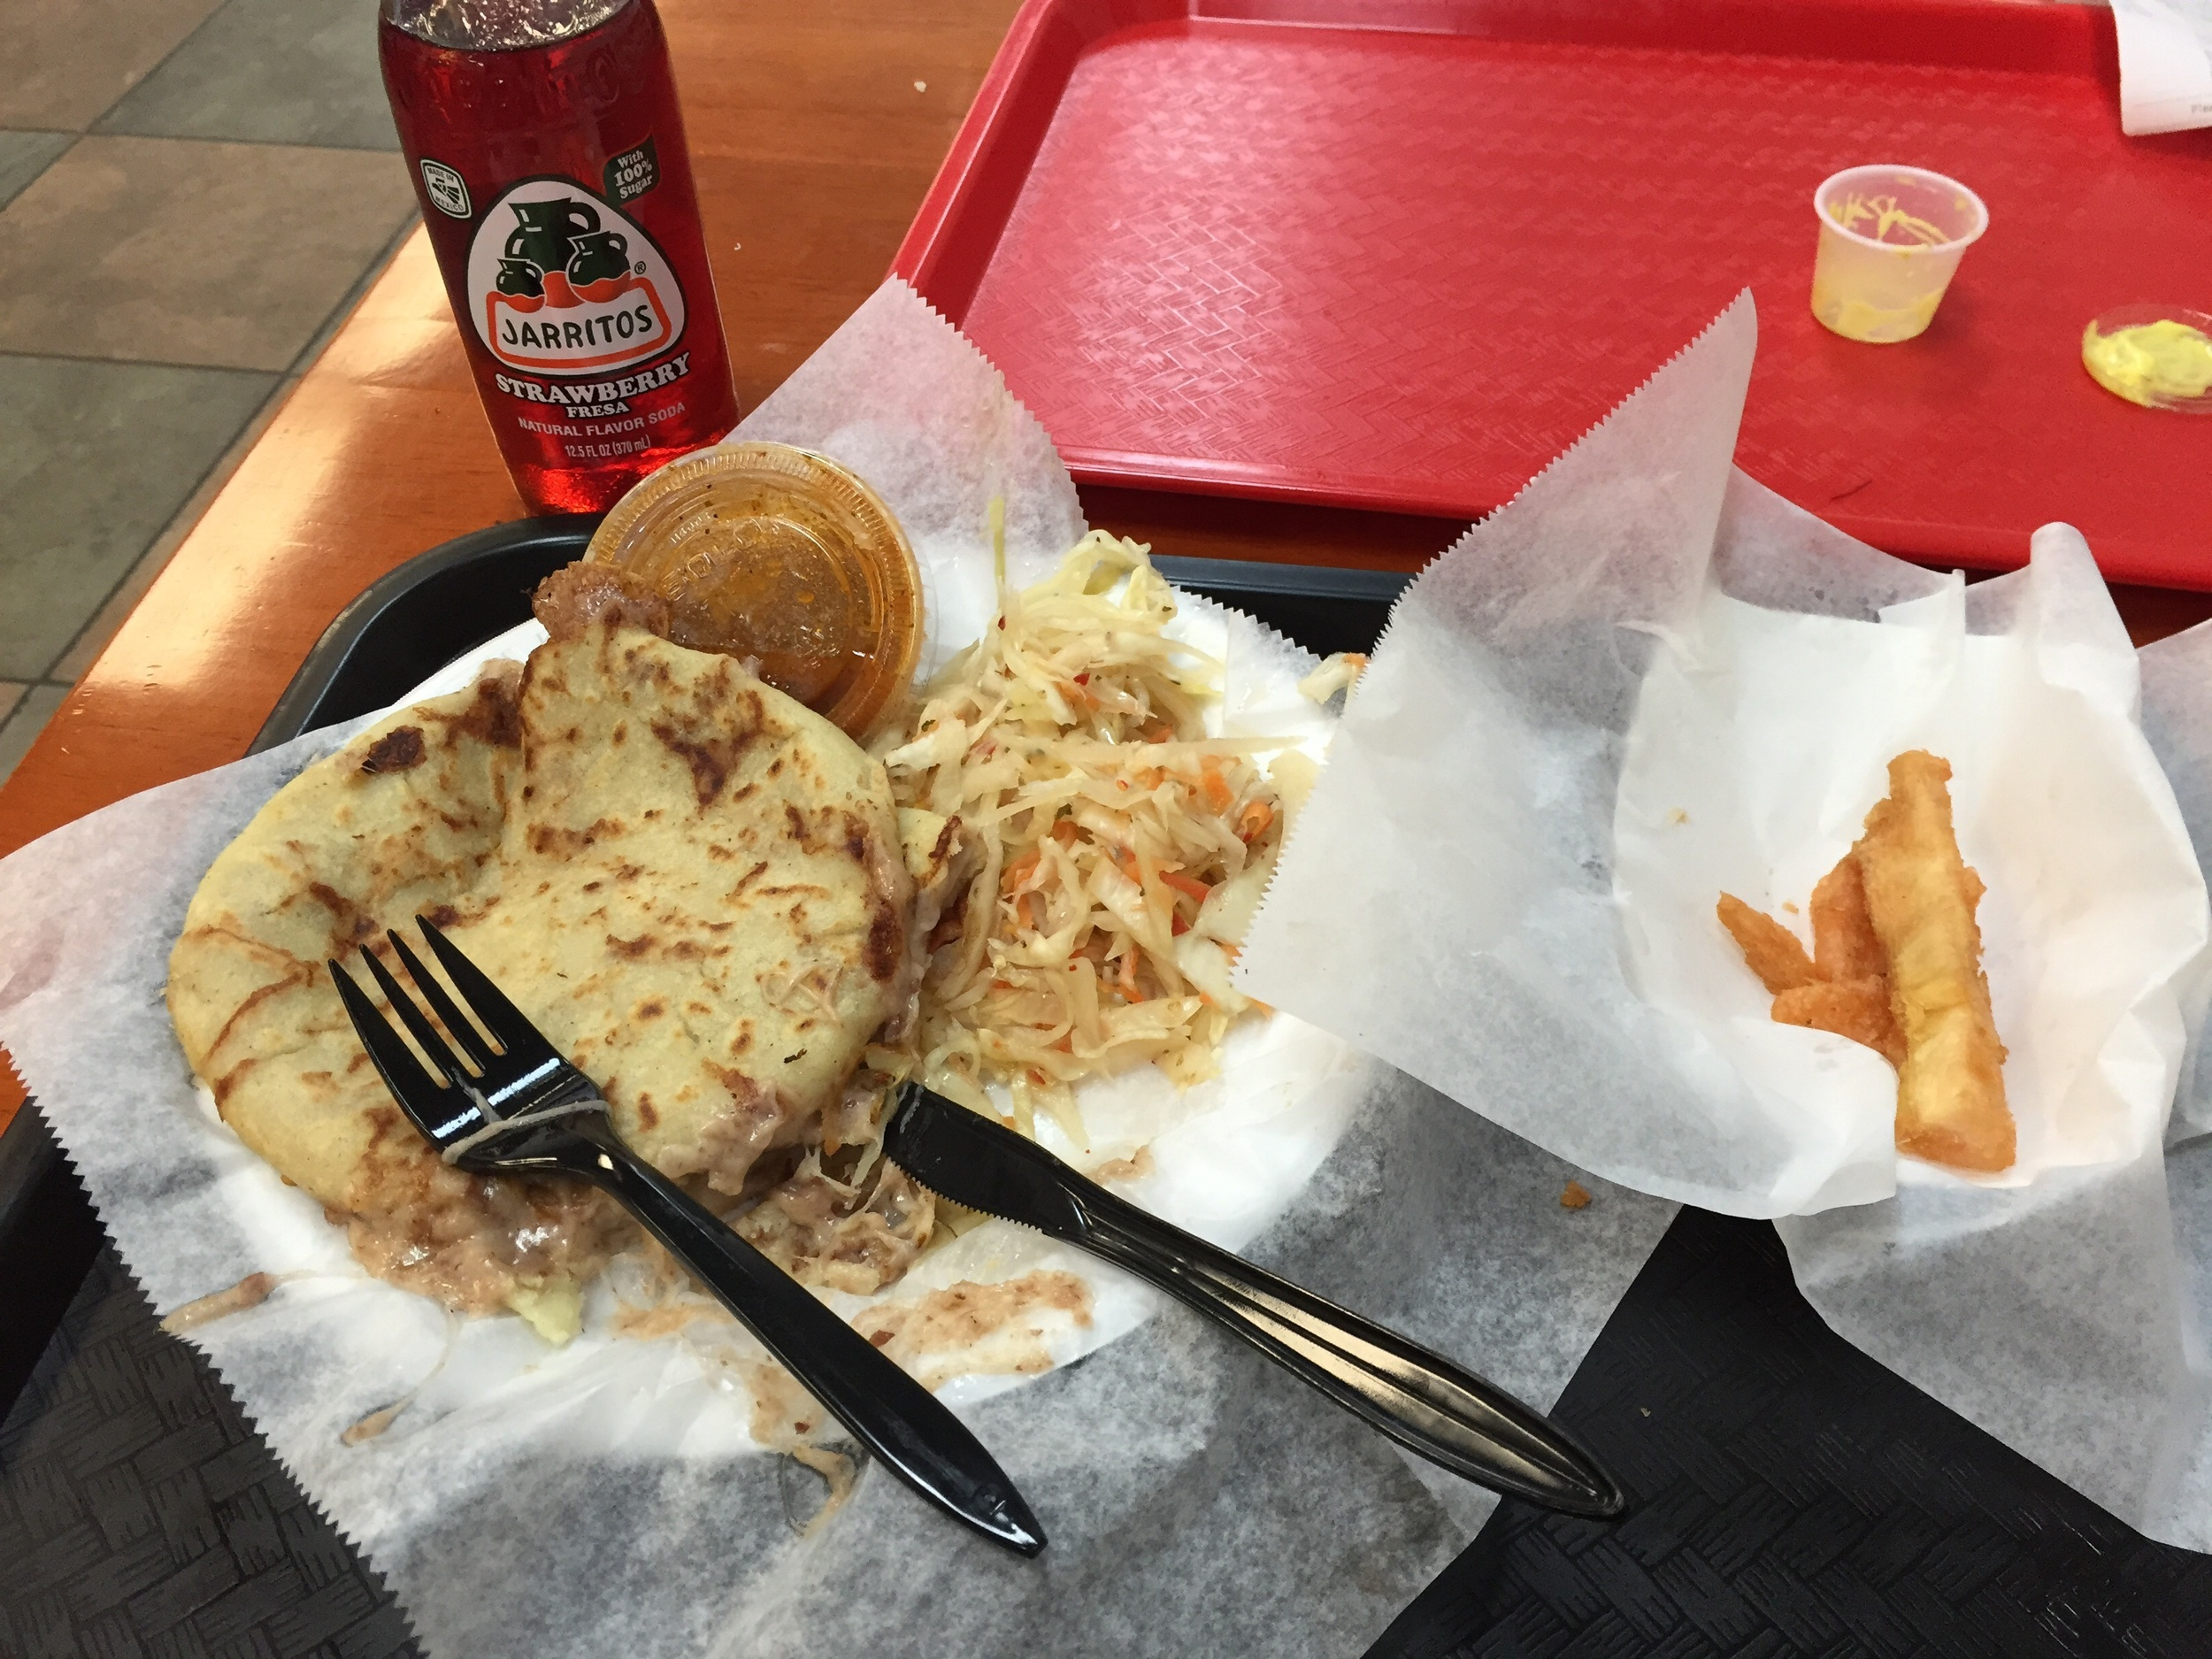 With a side of fried yuca and strawberry soda? Yes please.